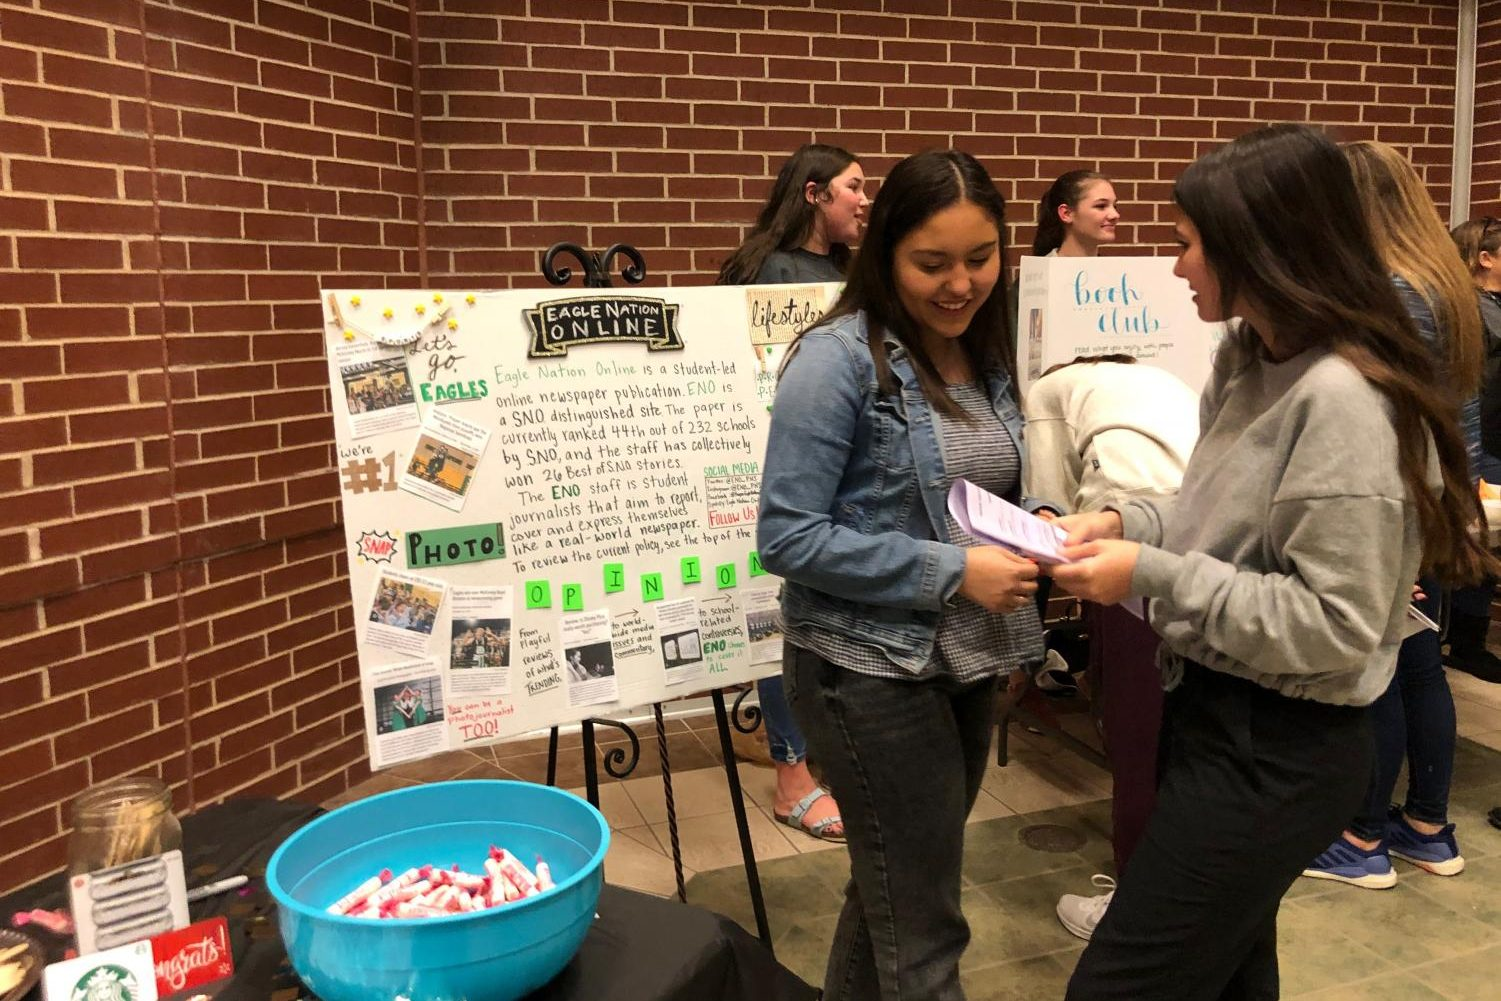 Students can get a glimpse into the various clubs and classes offered at Expo Night Monday, Jan. 15 from 6 to 8 p.m. Programs at both Prosper and Rock Hill will be on display.